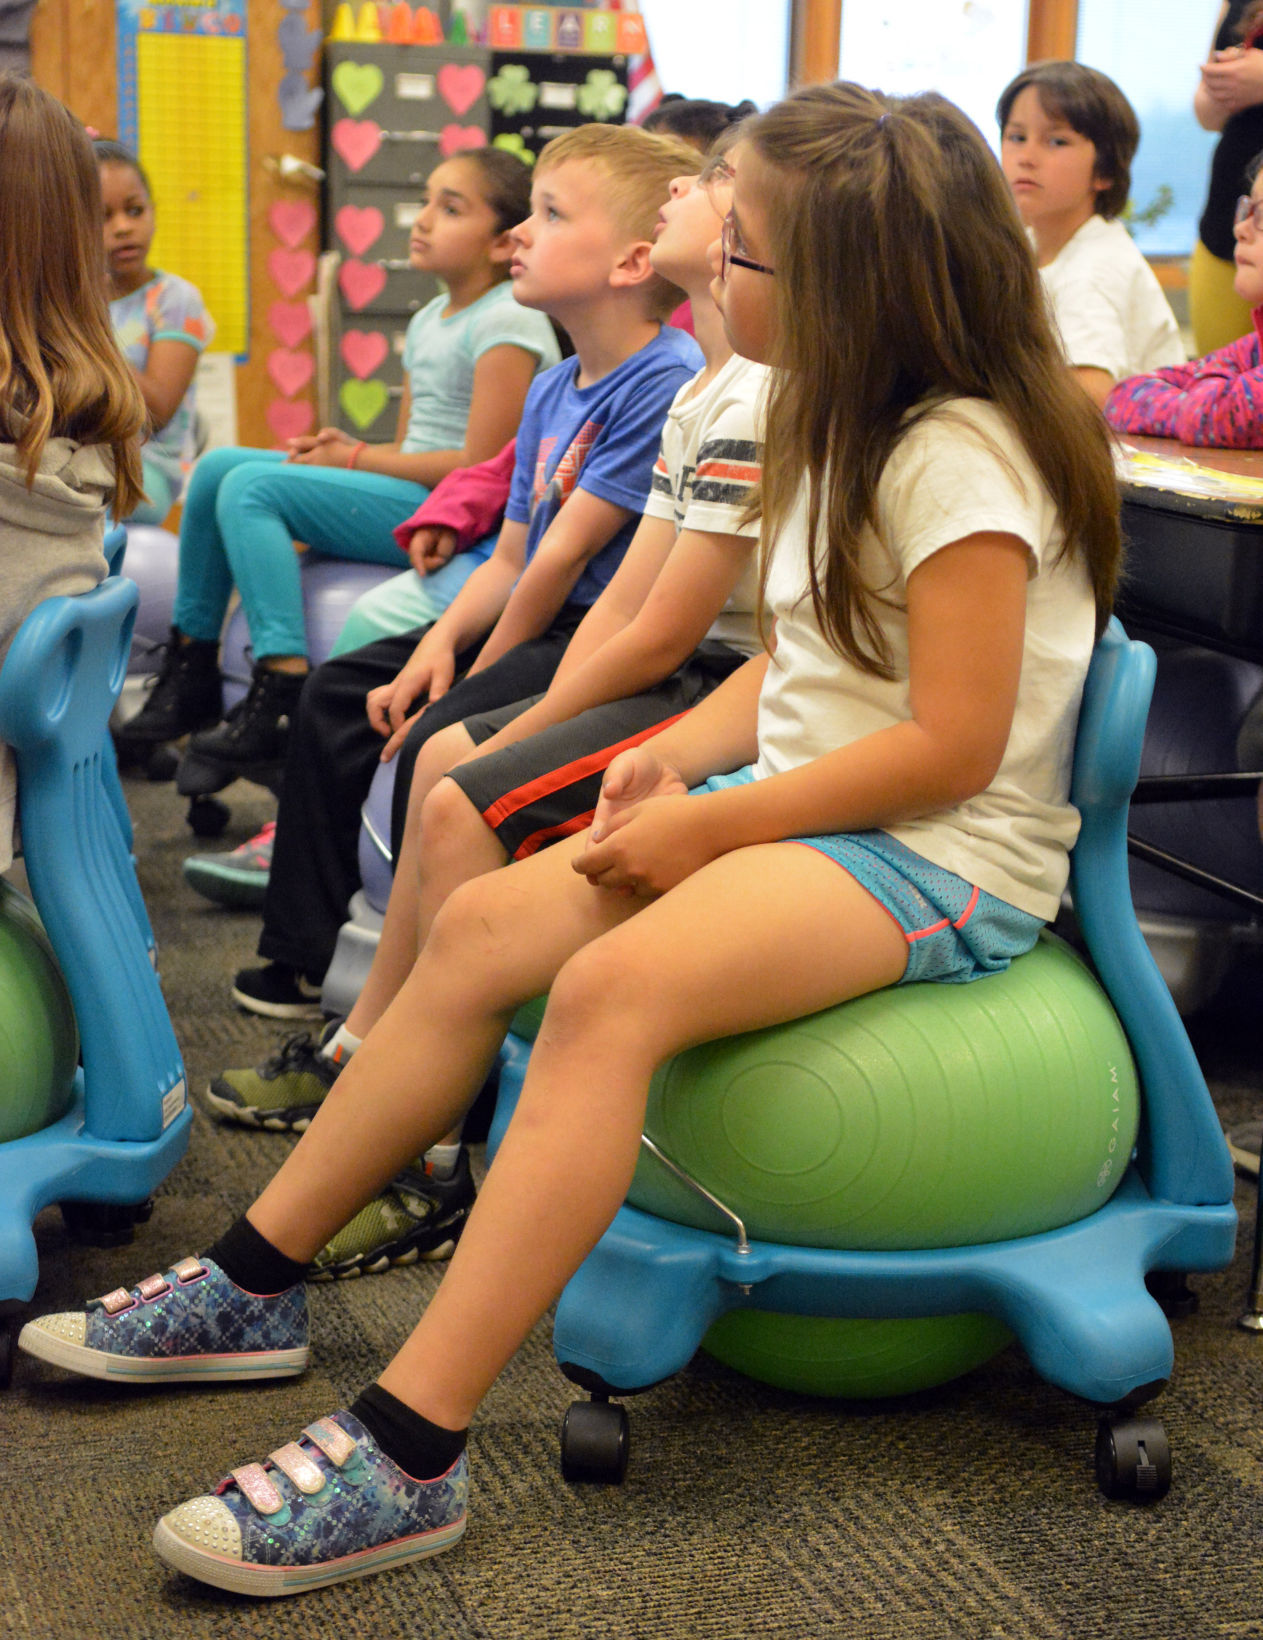 ball chairs for students nano gym chair give bounce local columbustelegram com lost creek elementary school first grade sit on that were added to the classroom this year alternative seating led improvements